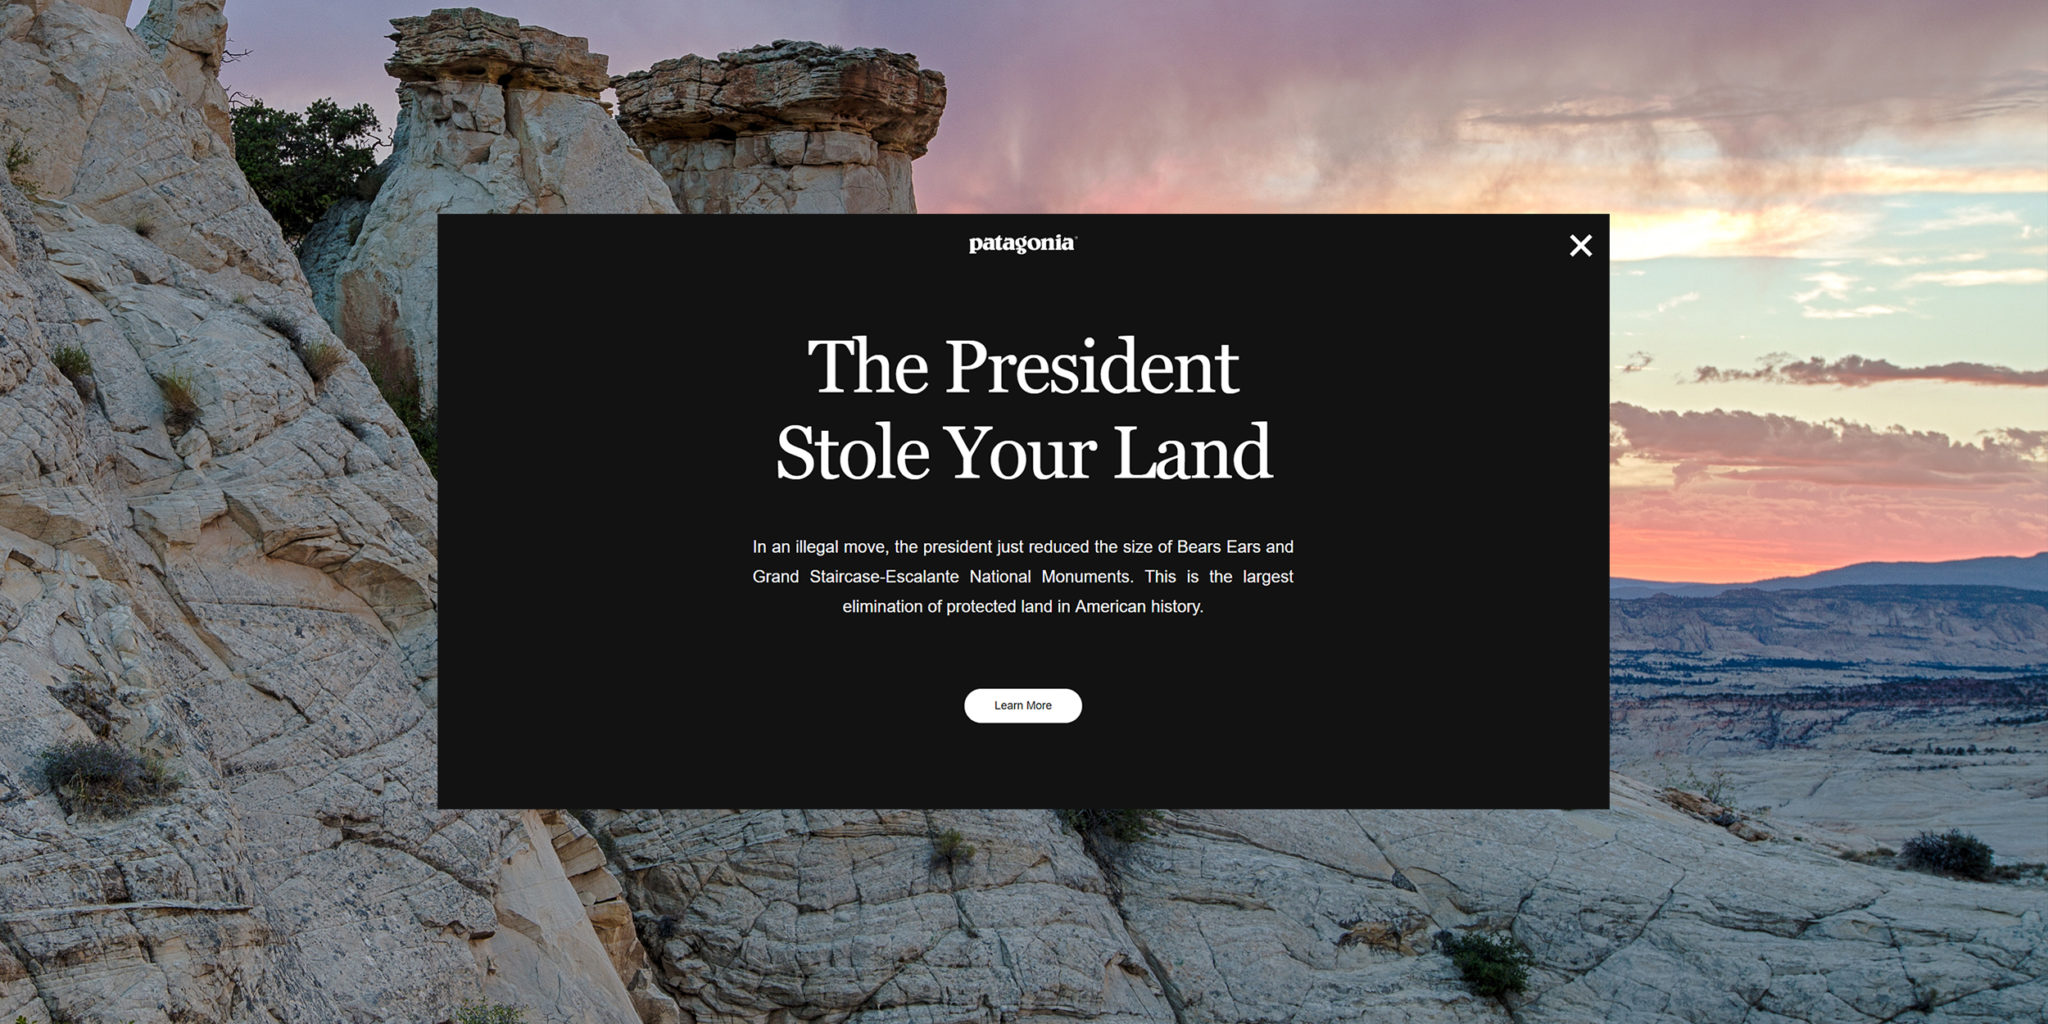 The President Stole Your Land - Patagonia Campaign